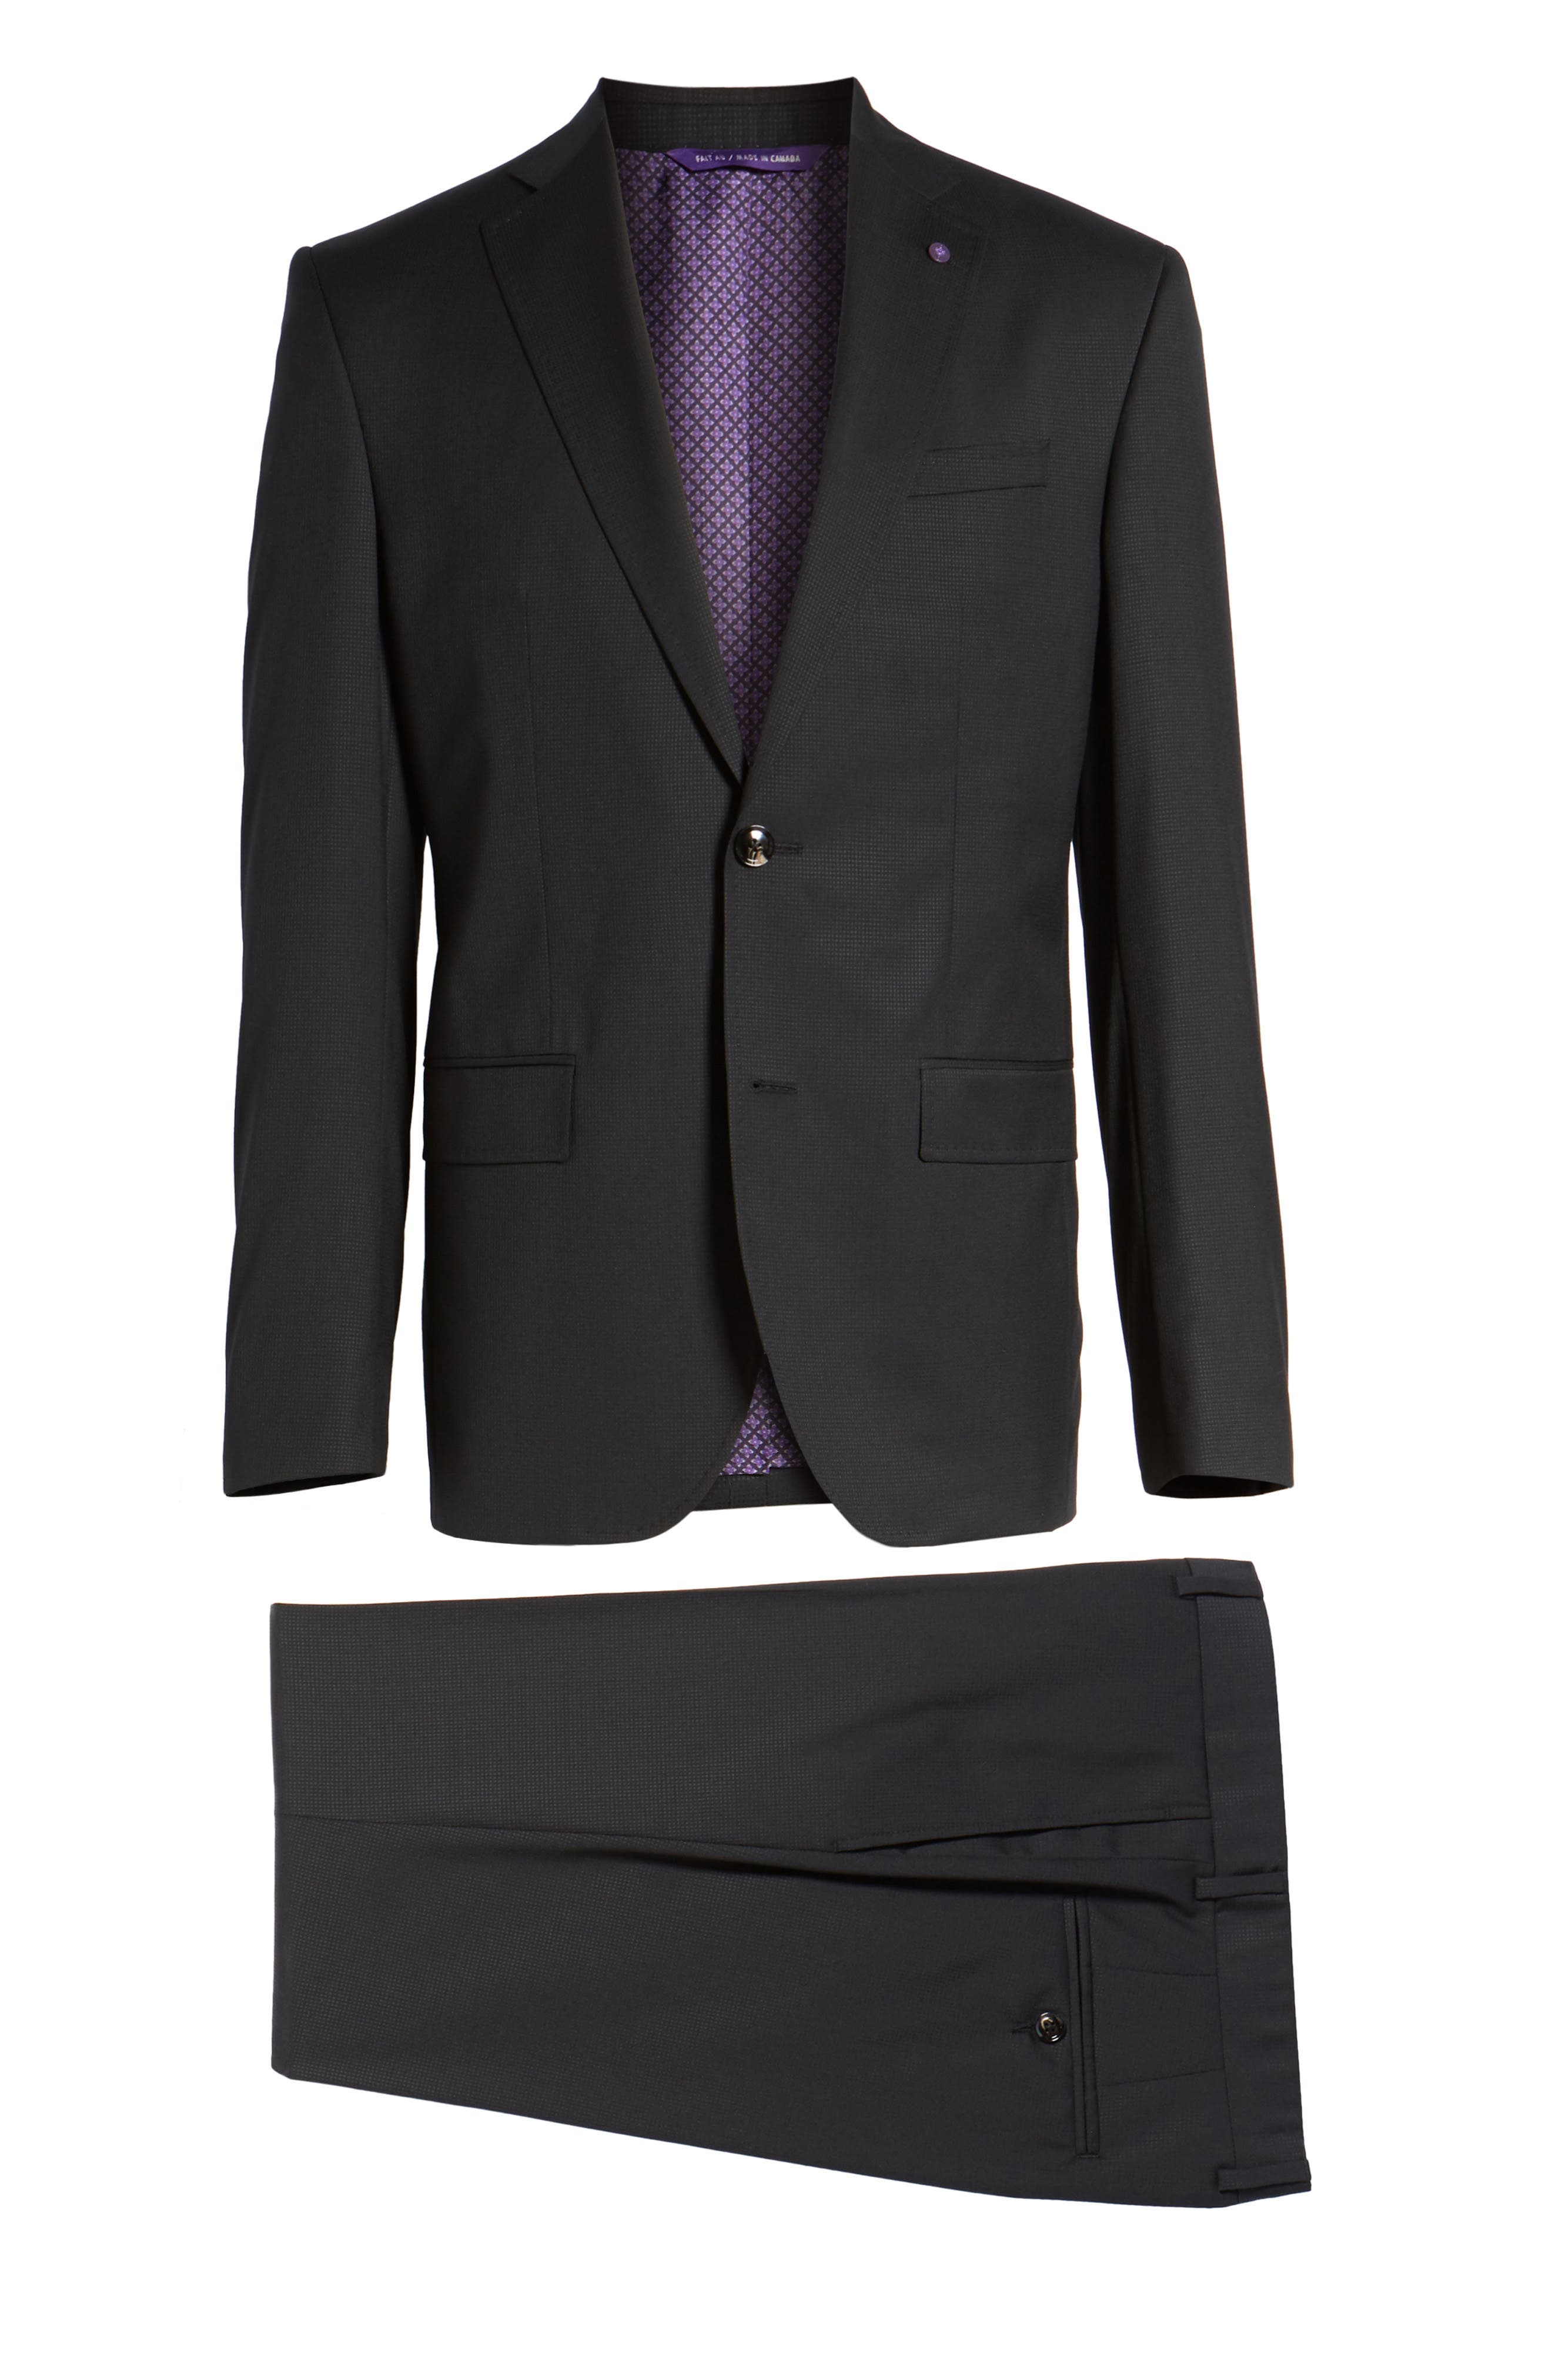 Roger Extra Slim Fit Solid Wool Suit,                             Alternate thumbnail 8, color,                             Black